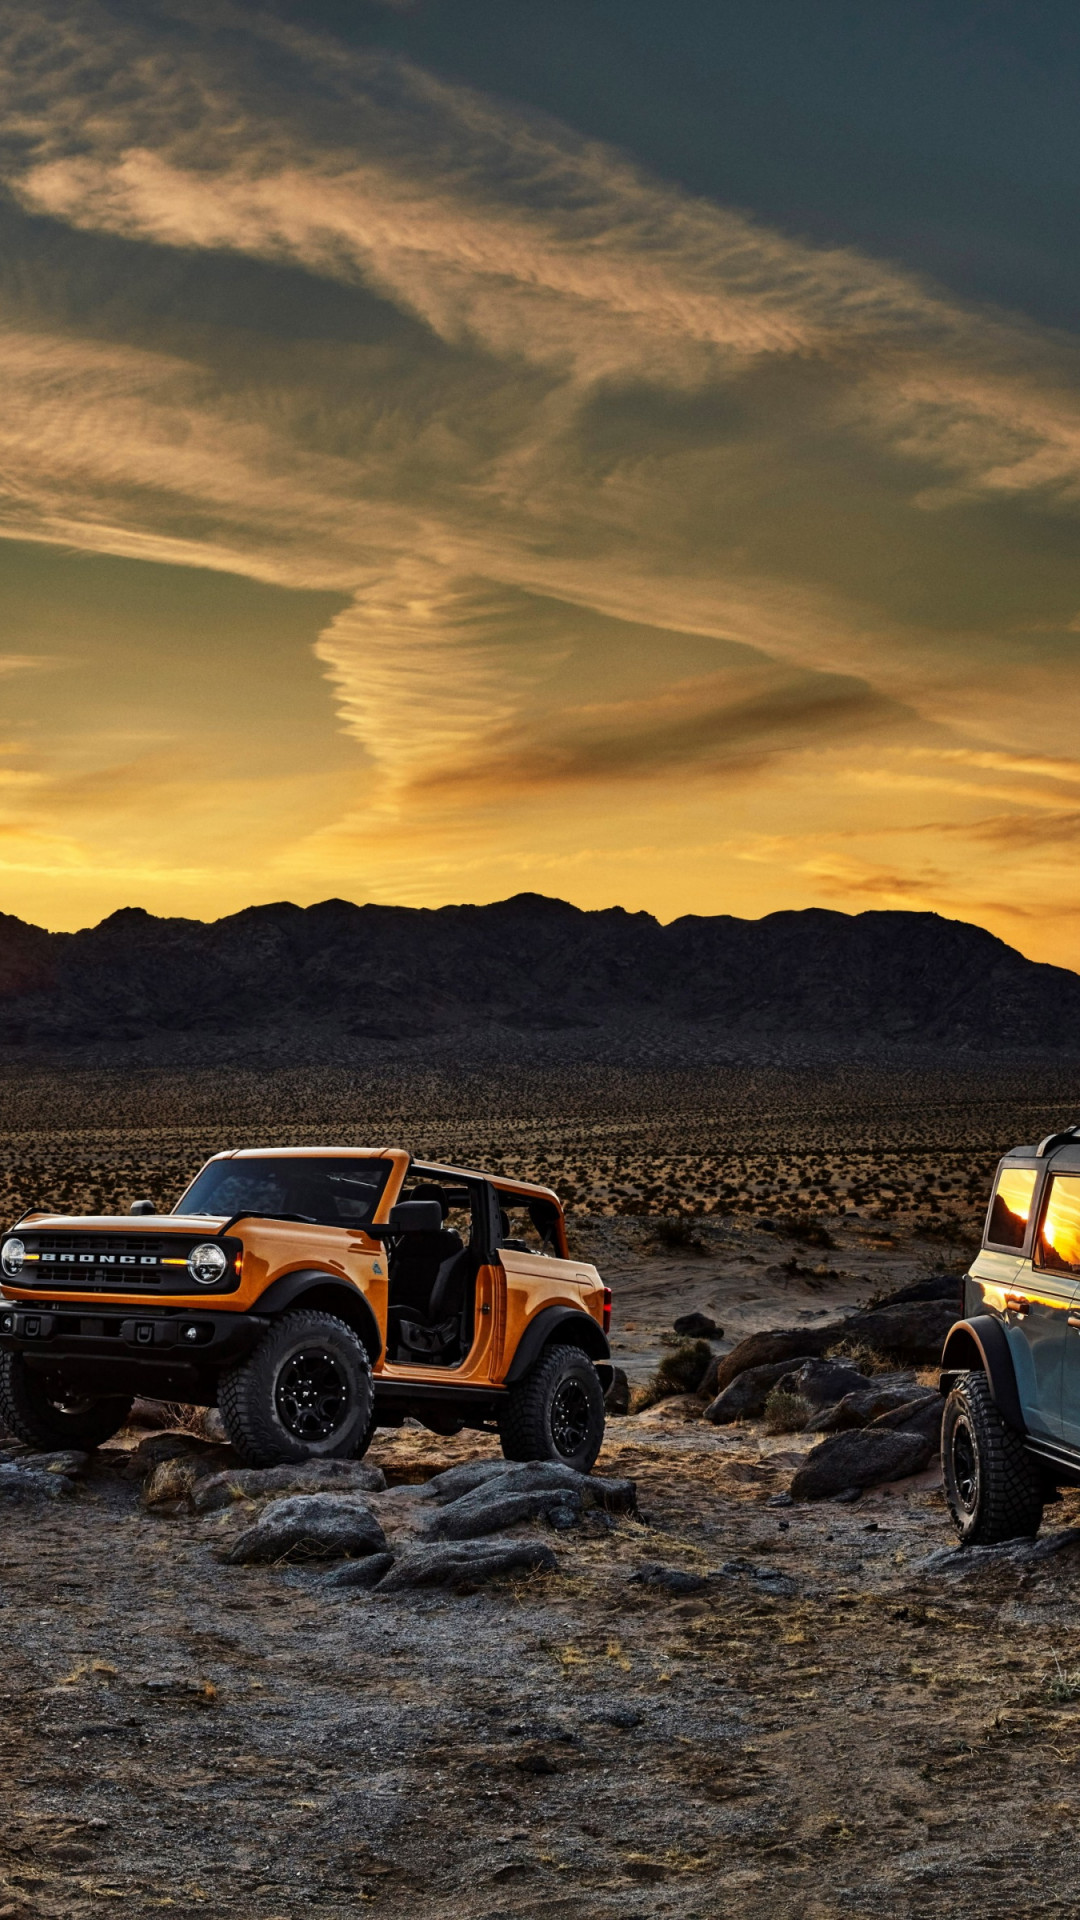 Download wallpaper: Ford Bronco 1080x1920